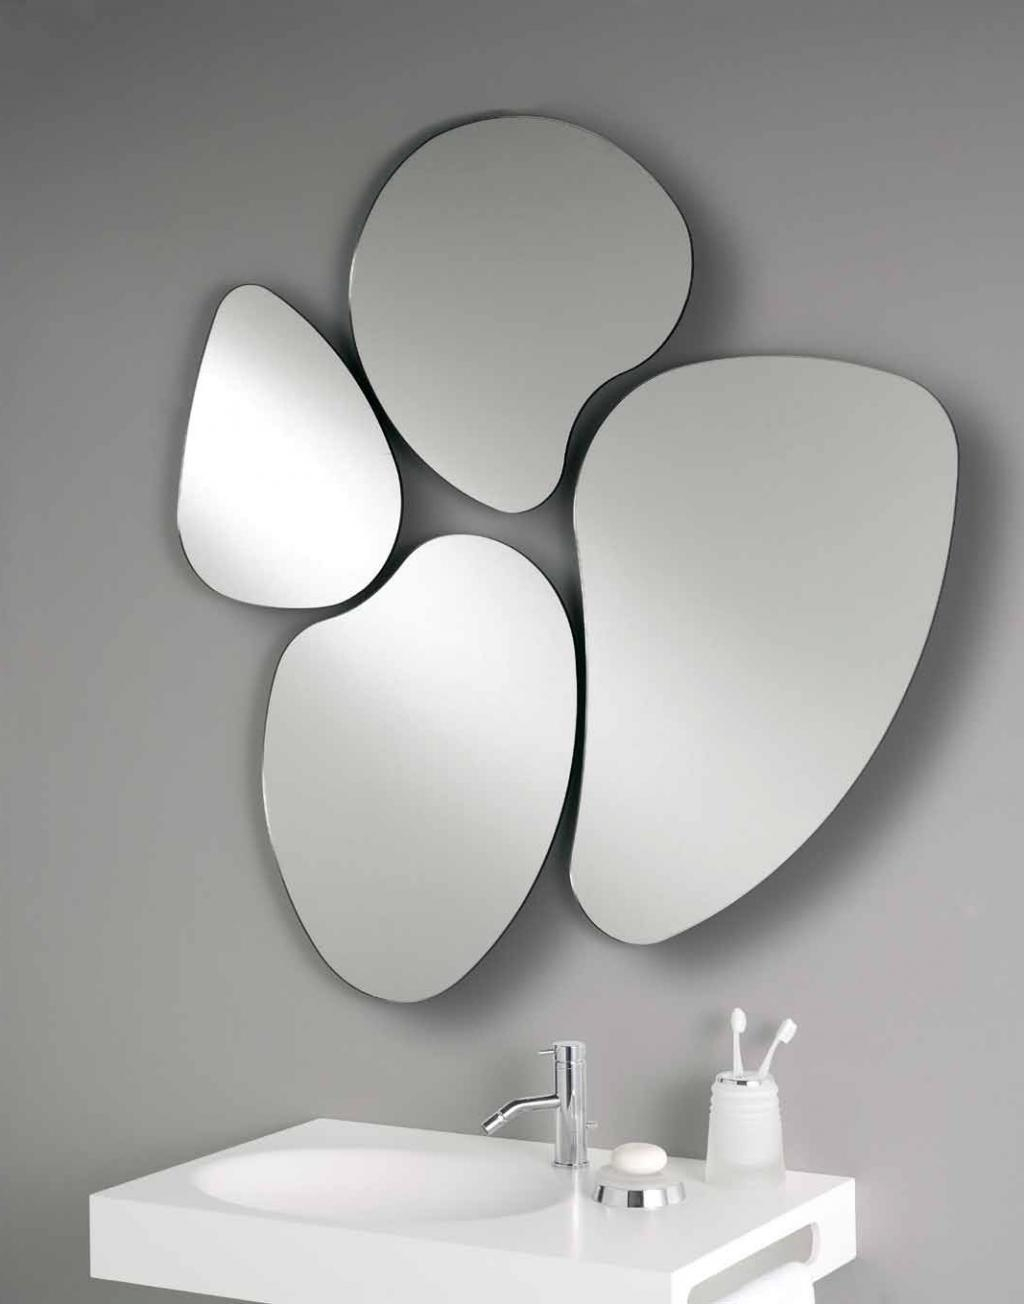 Top 15 unusual shaped mirrors mirror ideas Odd shaped mirrors